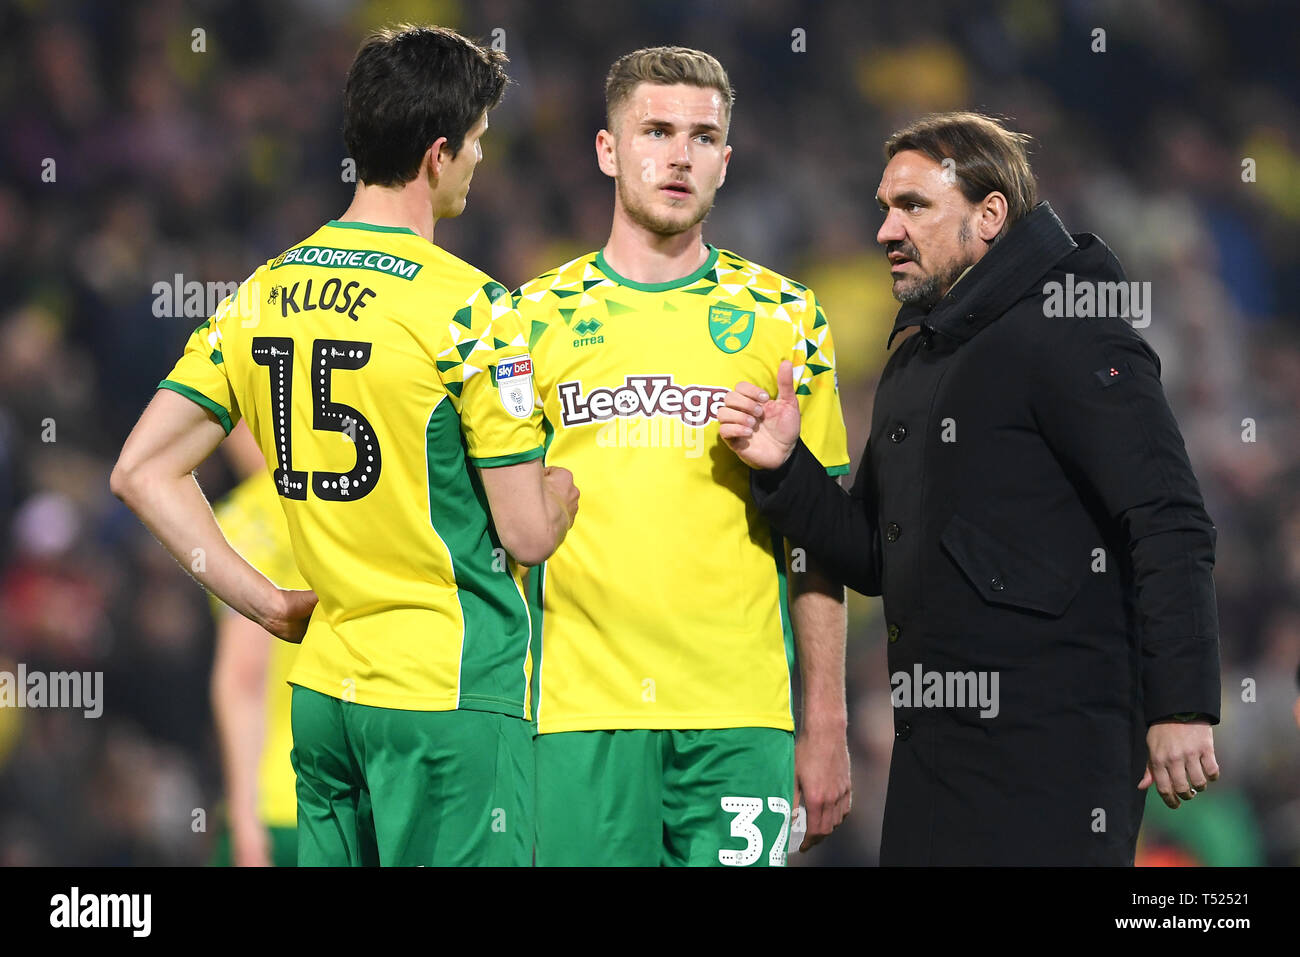 Norwich City manager Daniel Farke (right) celebrates with players Timm Klose (left) and Maximillian Aarons after the final whistle during the Sky Bet Championship match at Carrow Road, Norwich. Stock Photo